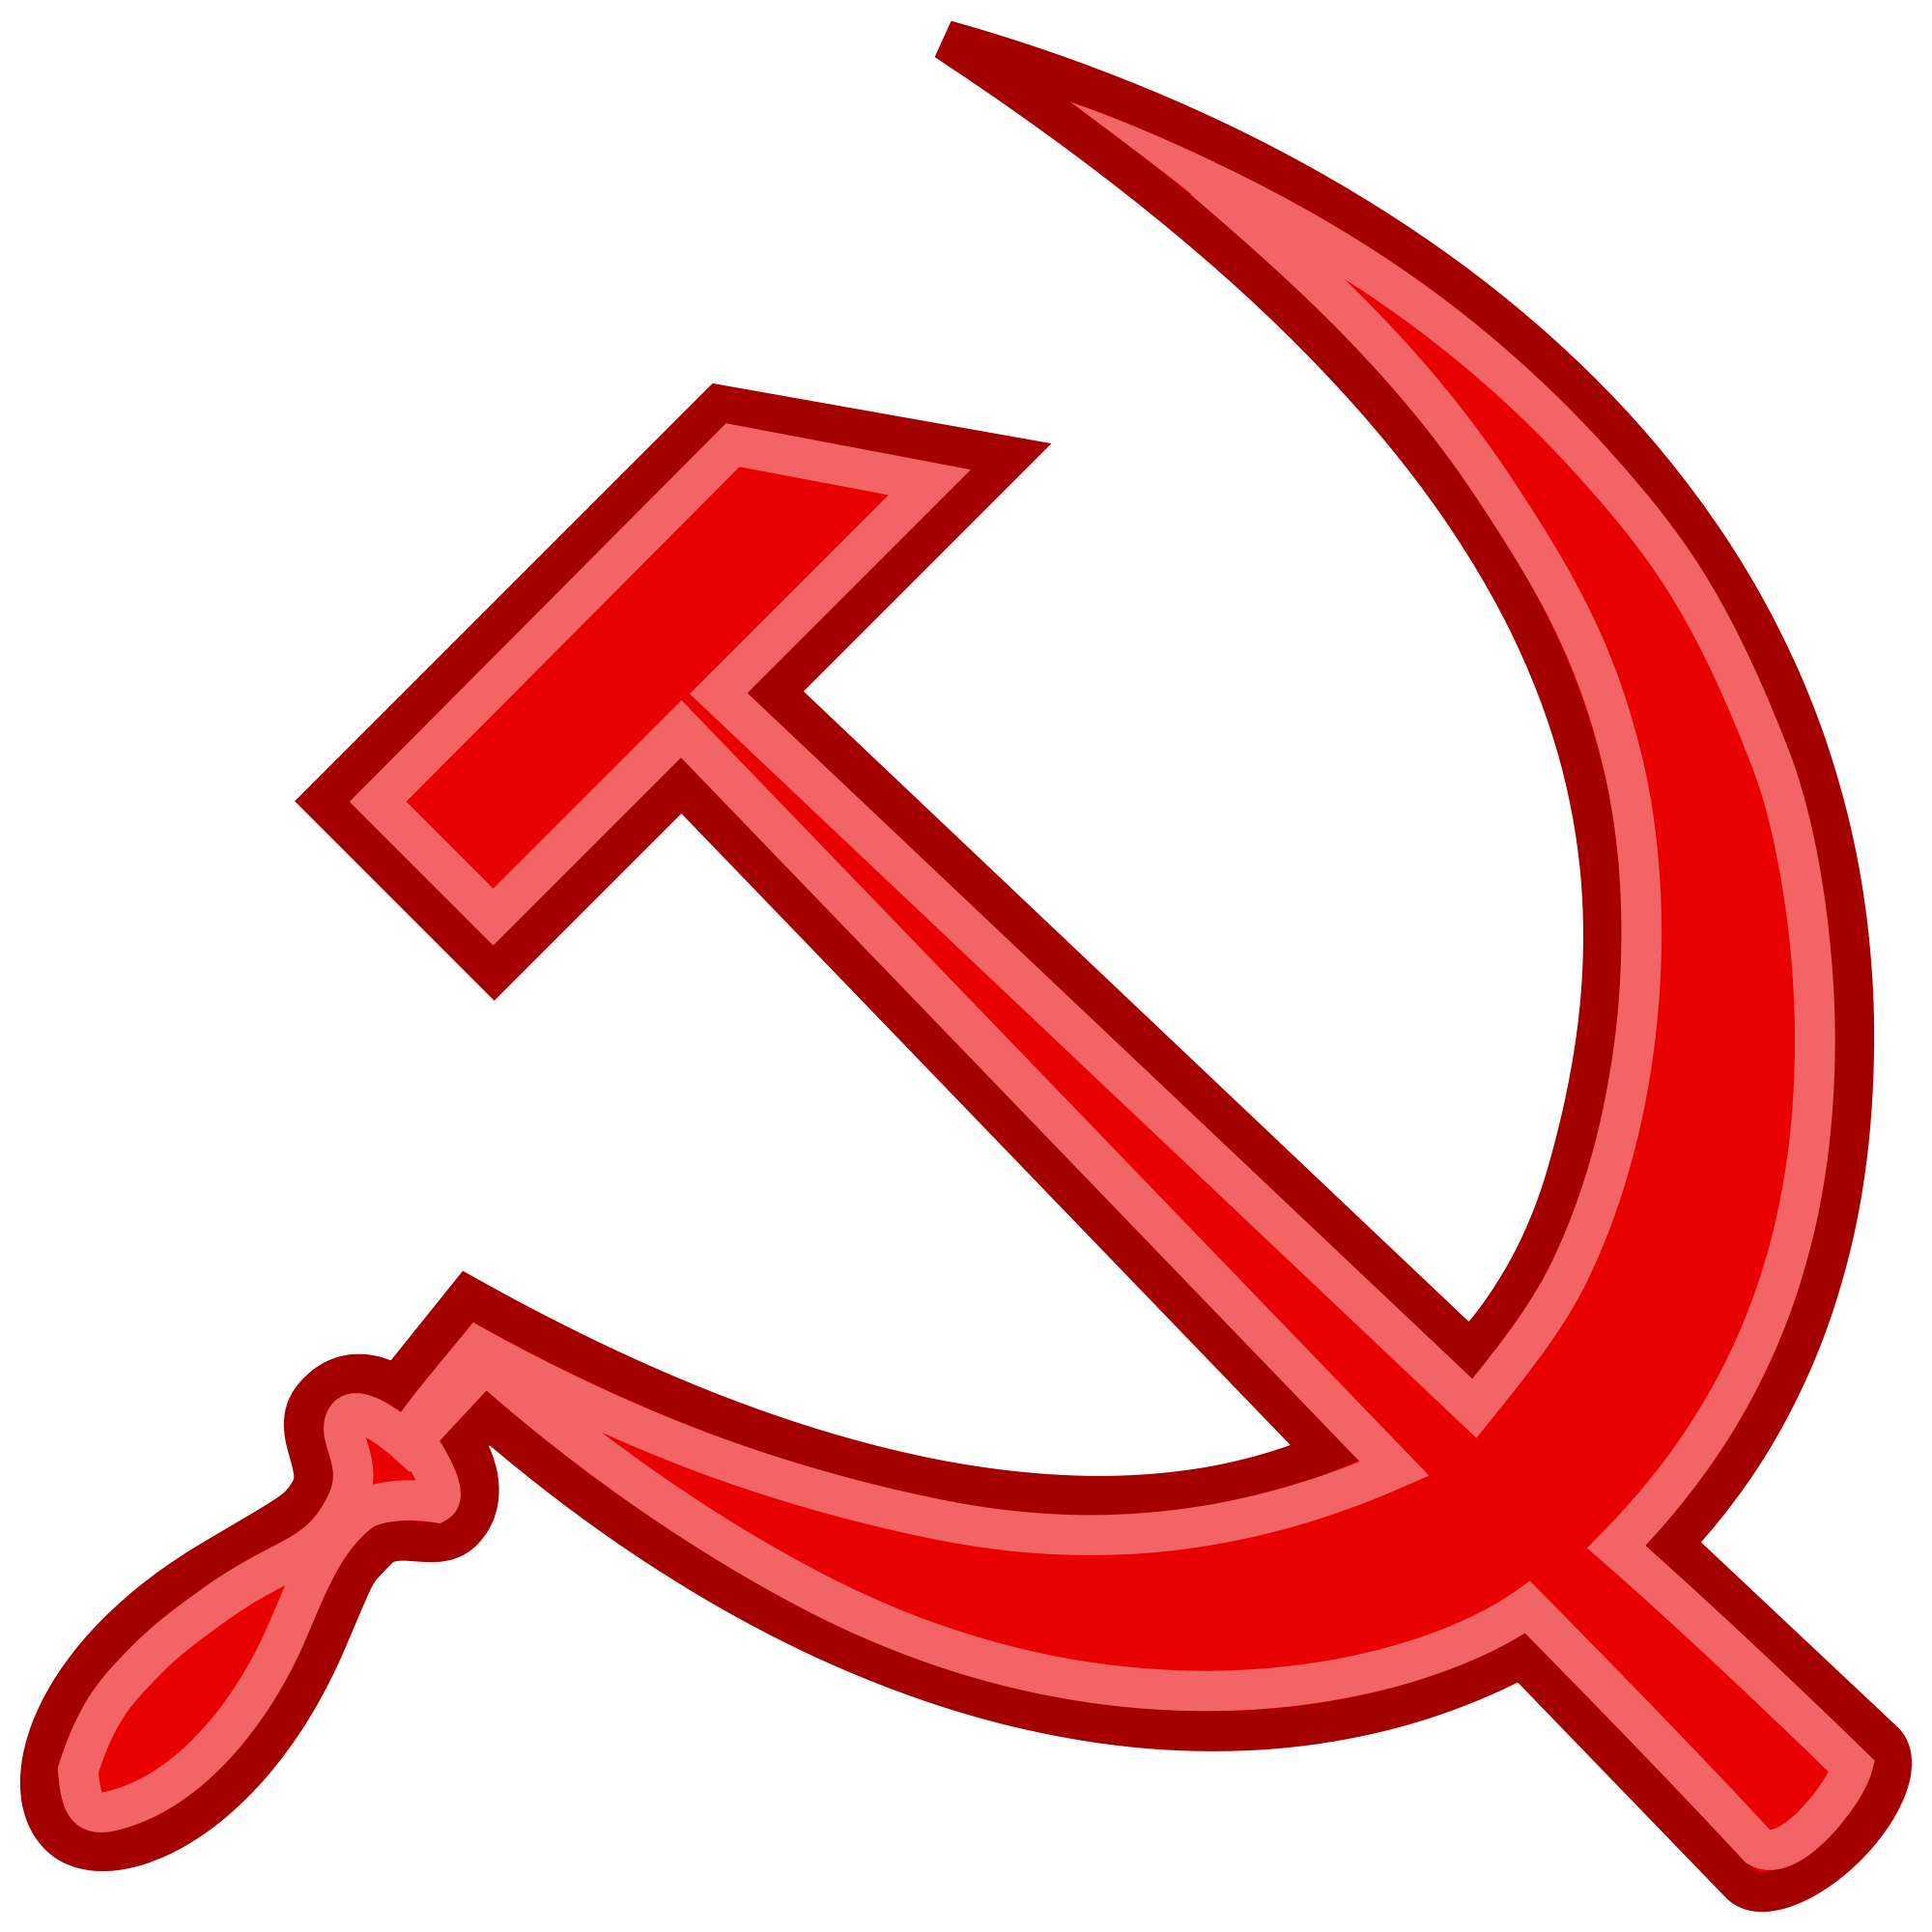 Traditional Hammer And Sickle Logo Hammer And Sickle Hammer Symbols